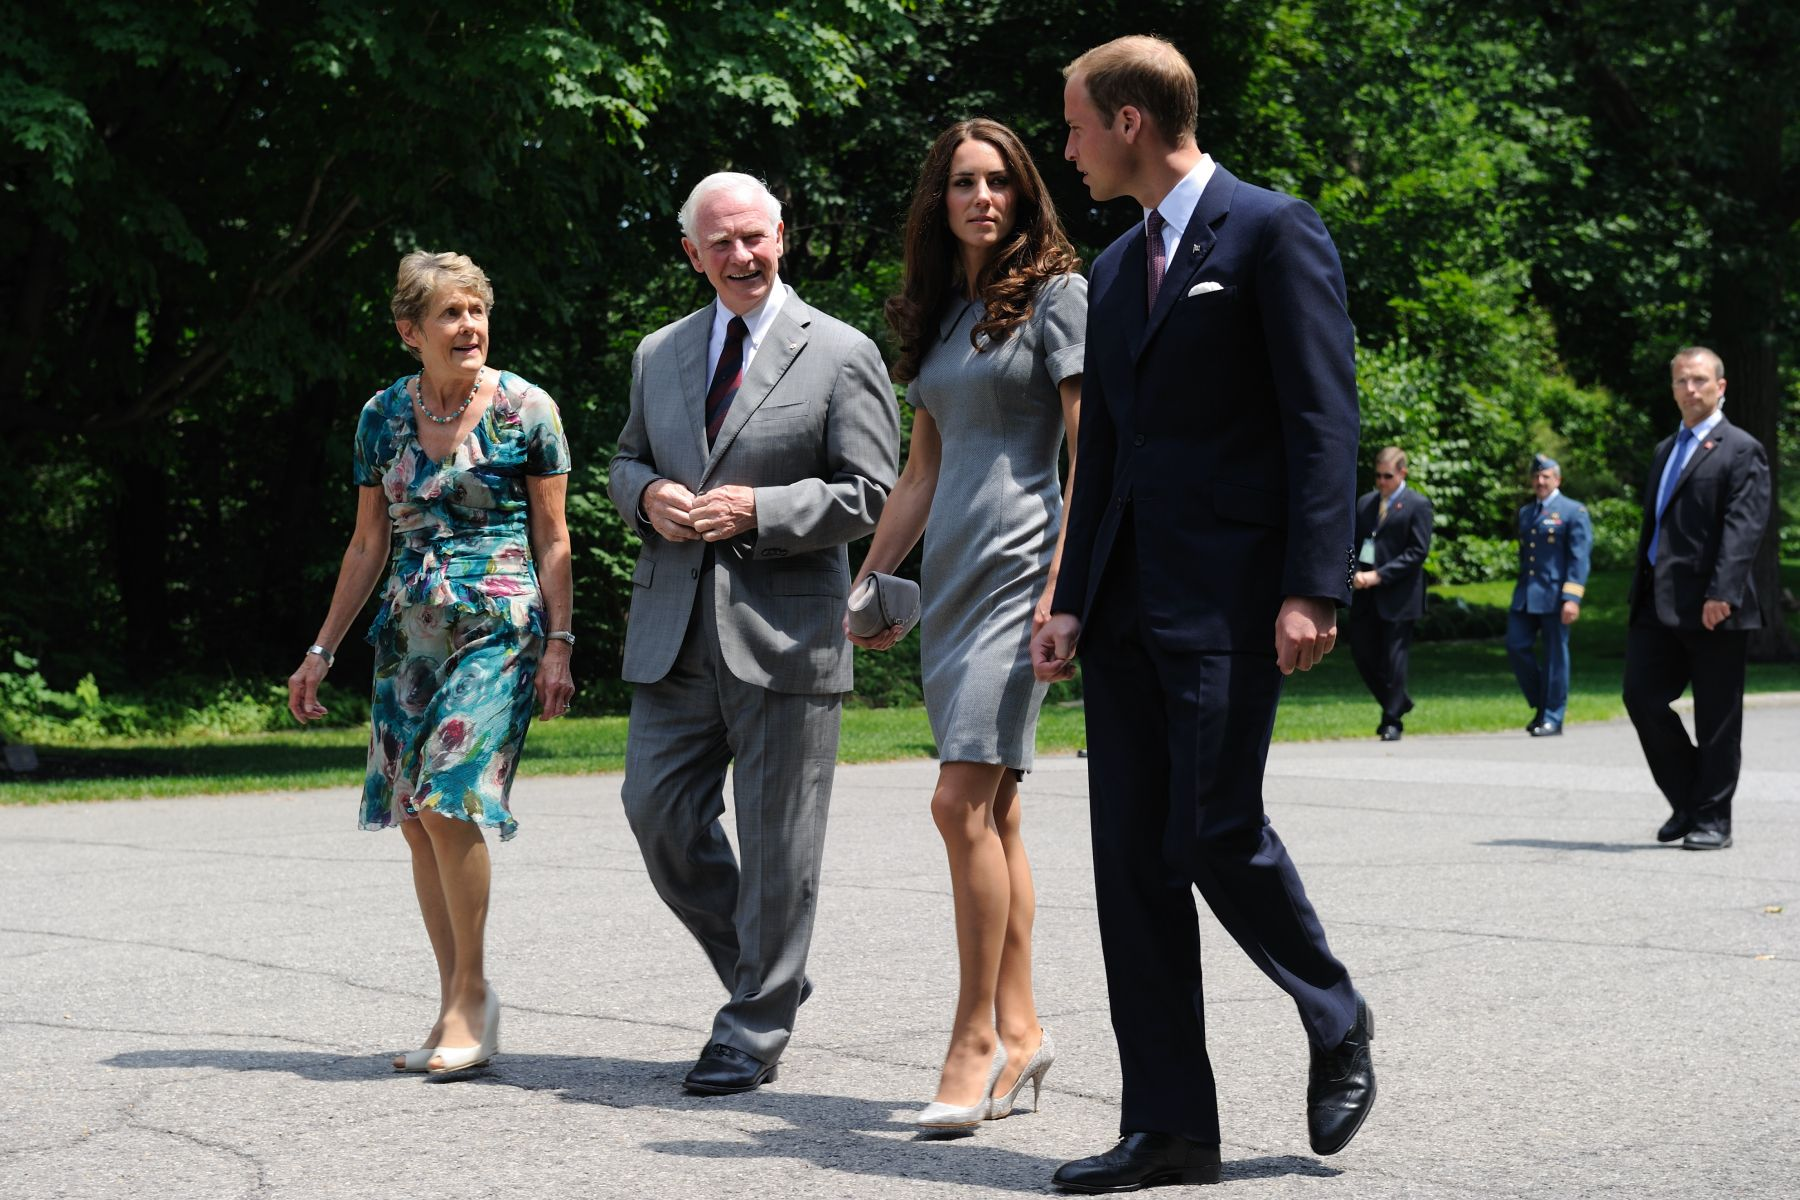 Their Excellencies hosted Their Royal Highnesses during their stay in Canada's Capital Region.